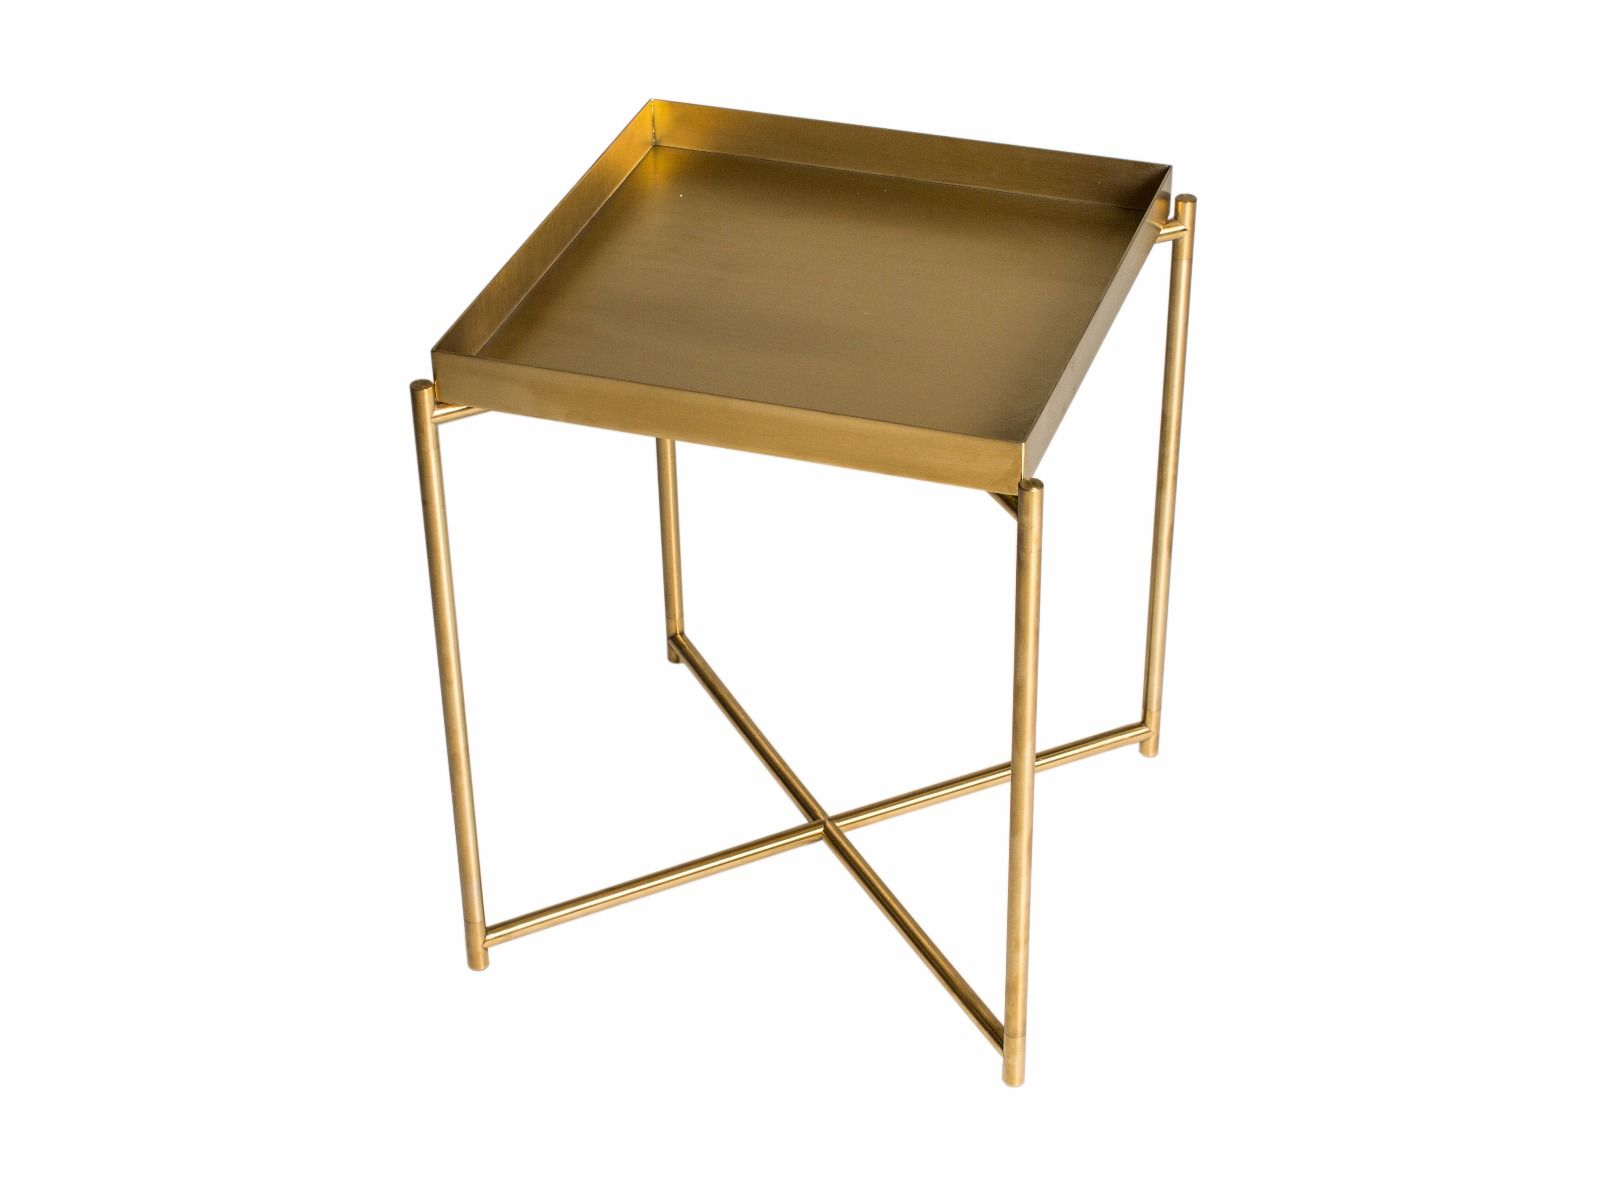 square tray top side table brass with frame collection iris gillmorespace accent gillmore space umbrella base wheels circular glass ikea occasional best computer desk gallerie